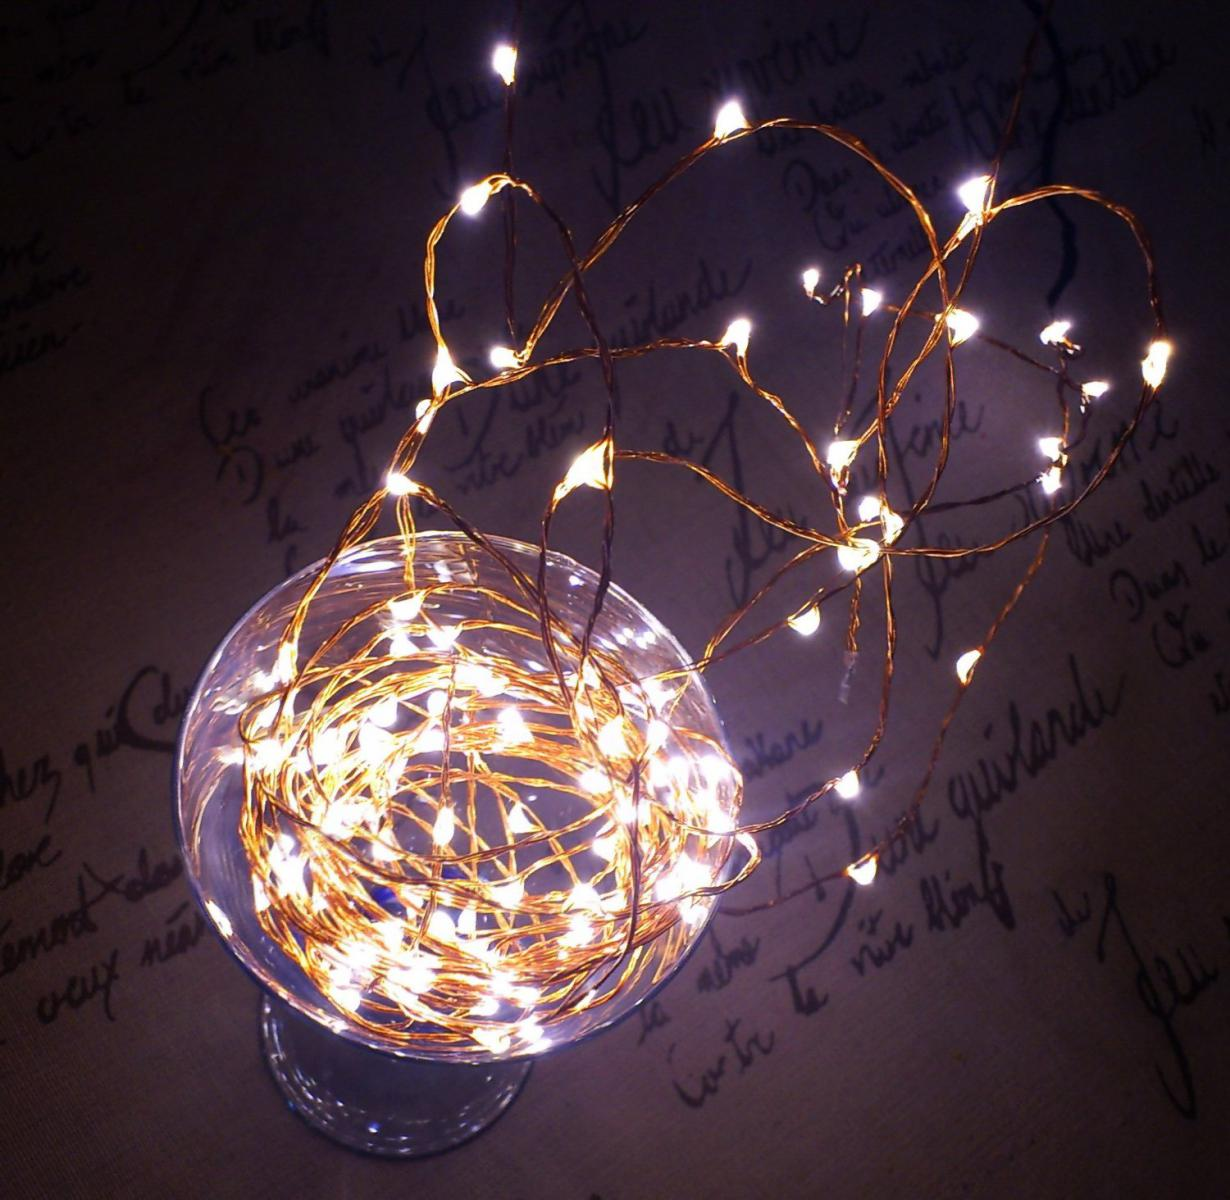 SOFT WARM WHITE CHRISTMAS FAIRY STARRY LIGHTS, EXTRA LONG QUALIZZI STAR LIGHTS eBay